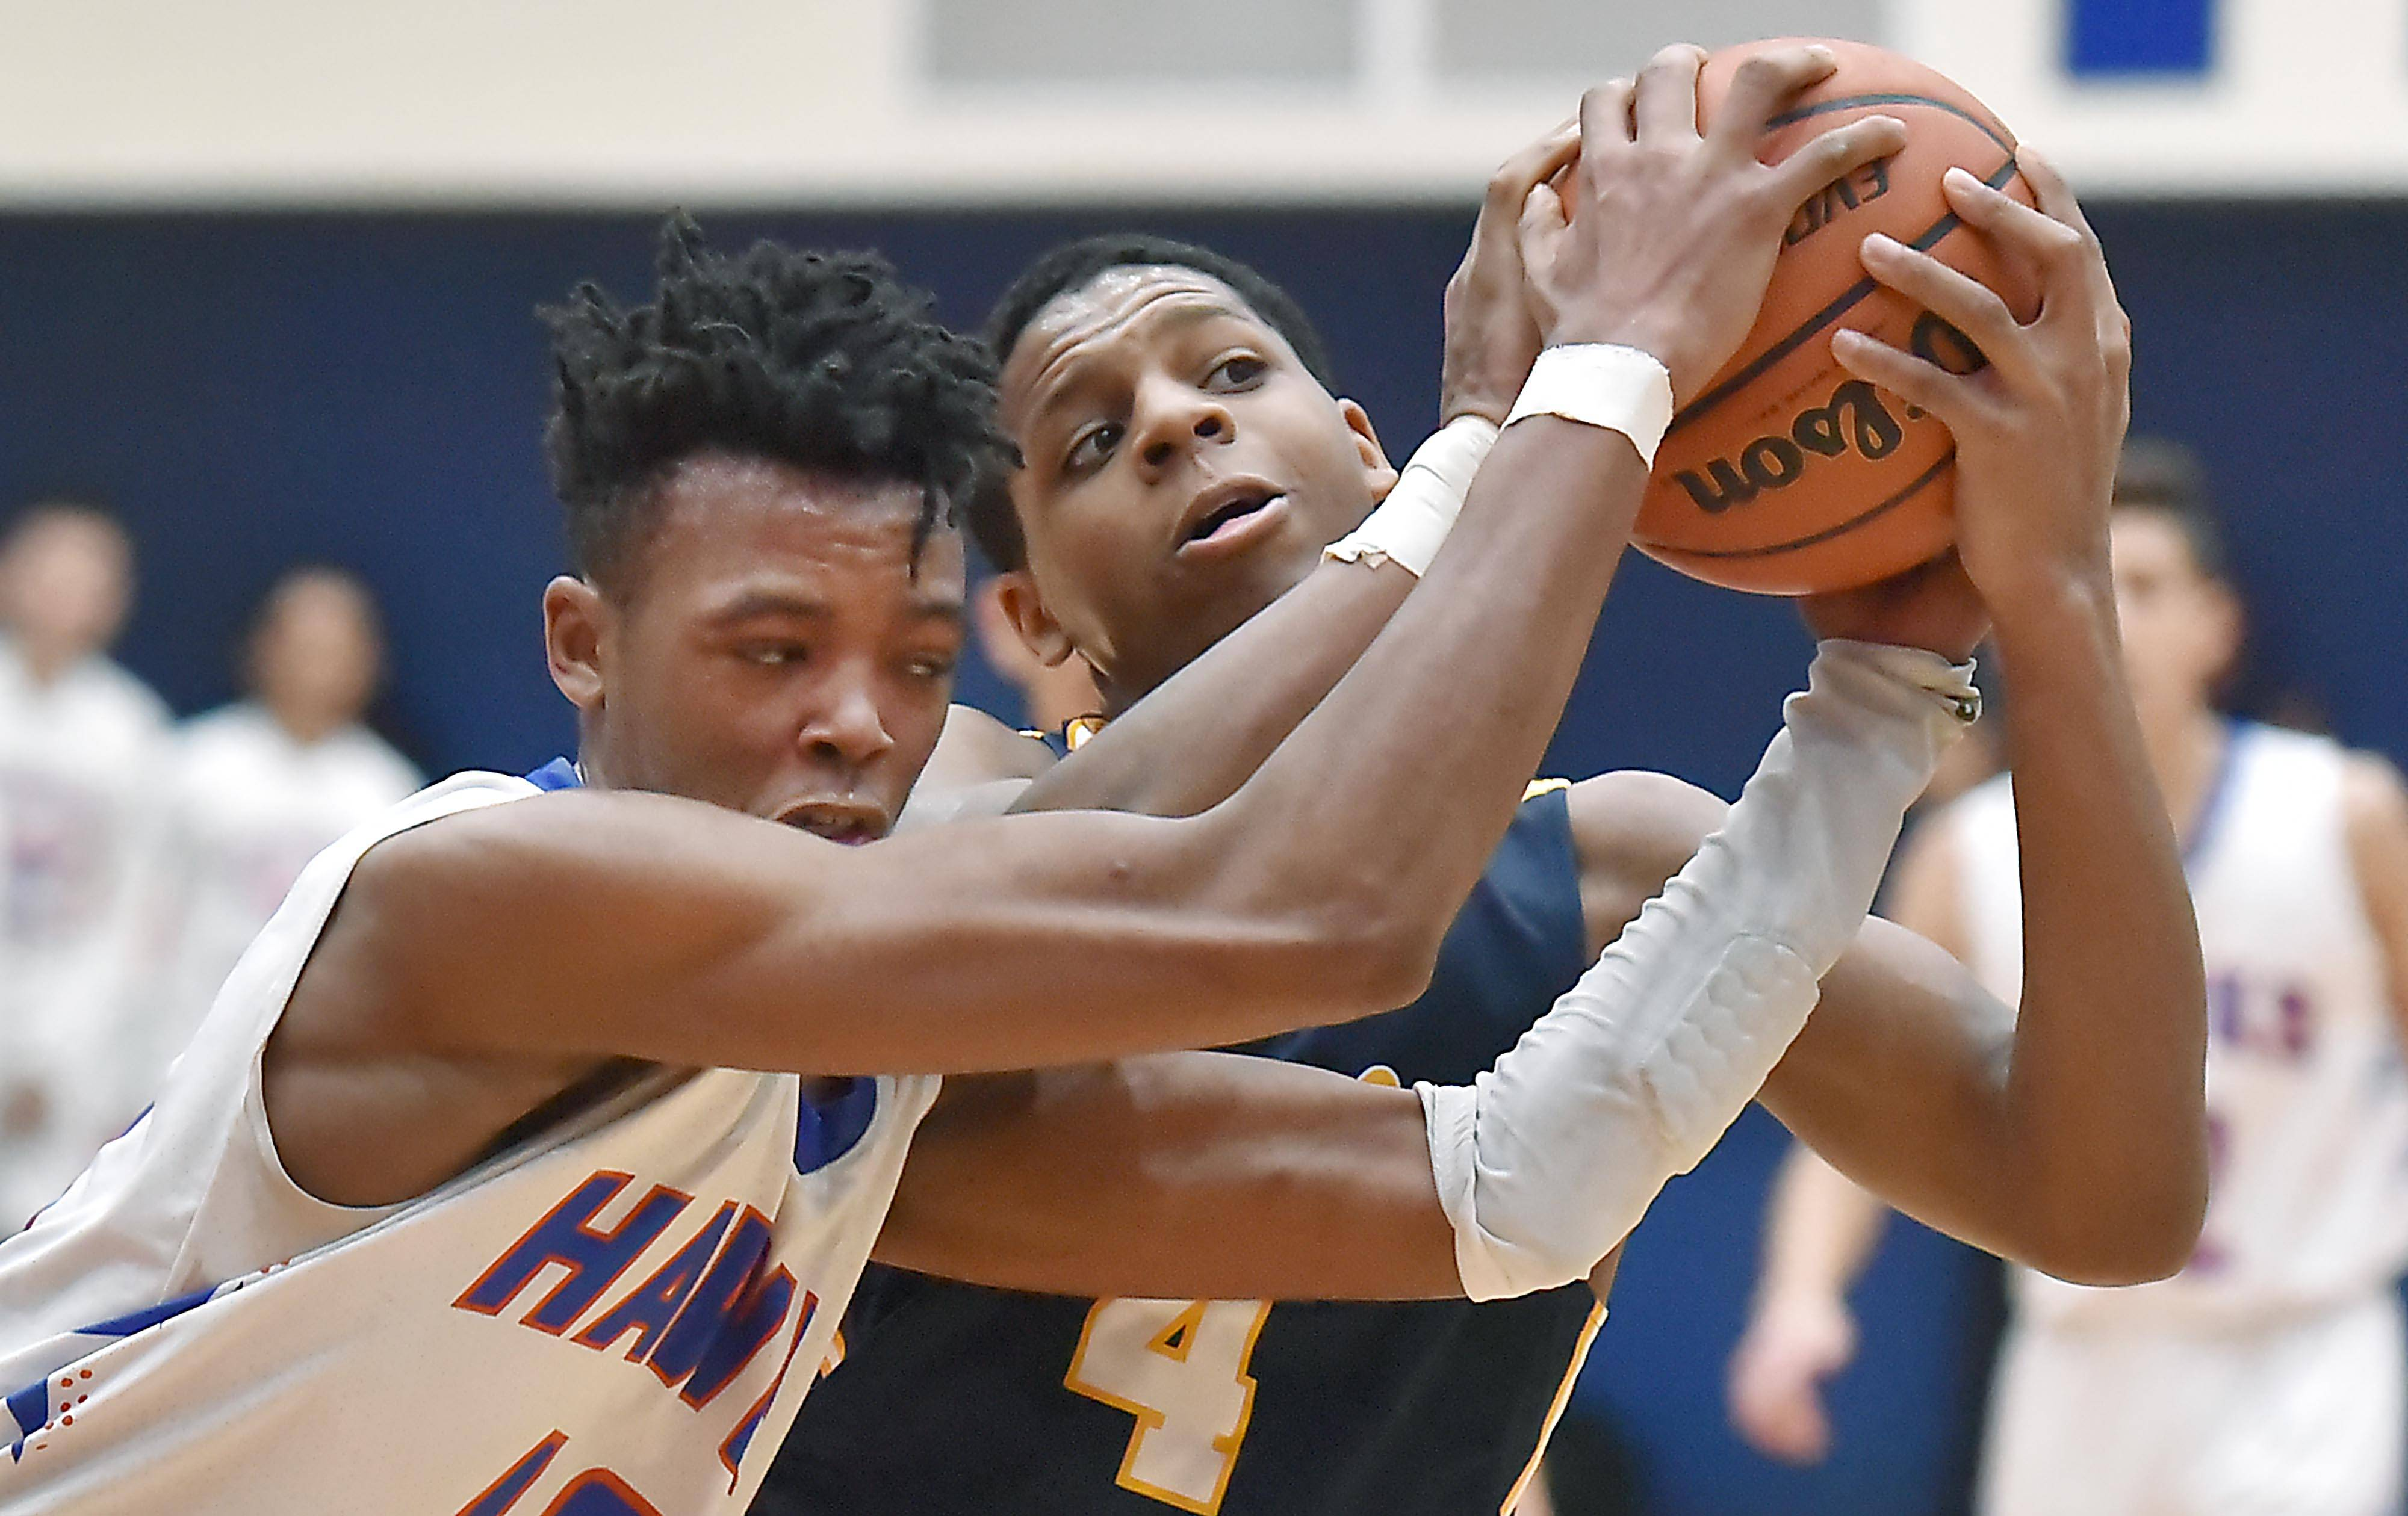 Round Lake's Hakim Williams and Hoffman Estates' Sheldon Barnett-Morales fight for possession of the ball Wednesday in a boys basketball game in Hoffman Estates.